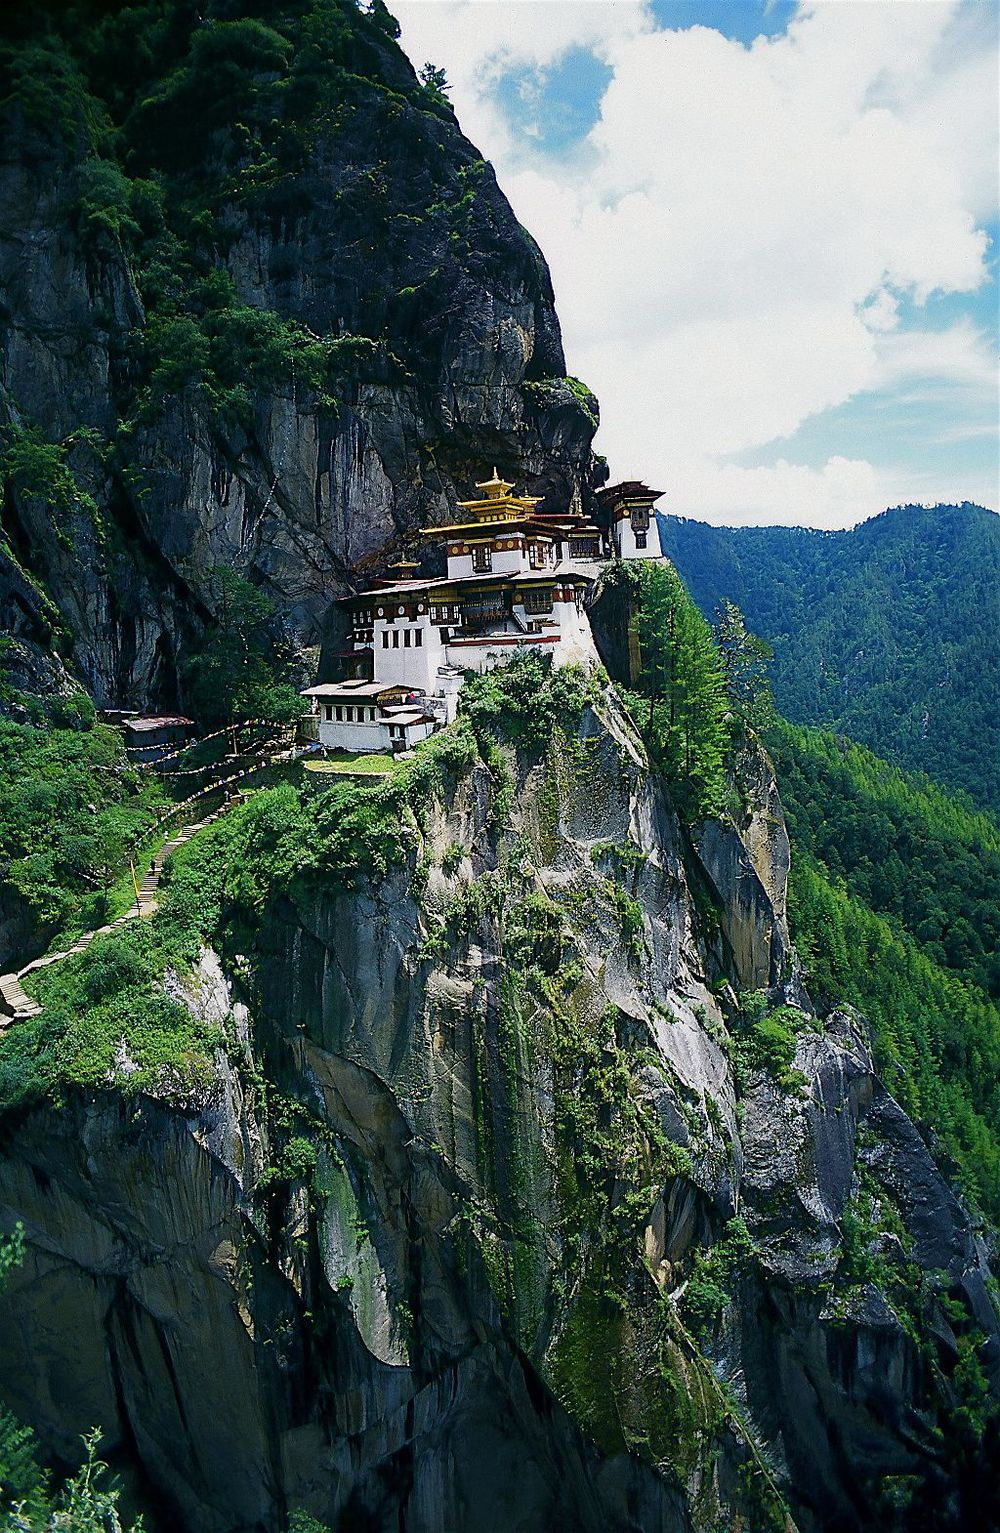 Taktsang Palphug Monastery (also known as Tiger's Nest)